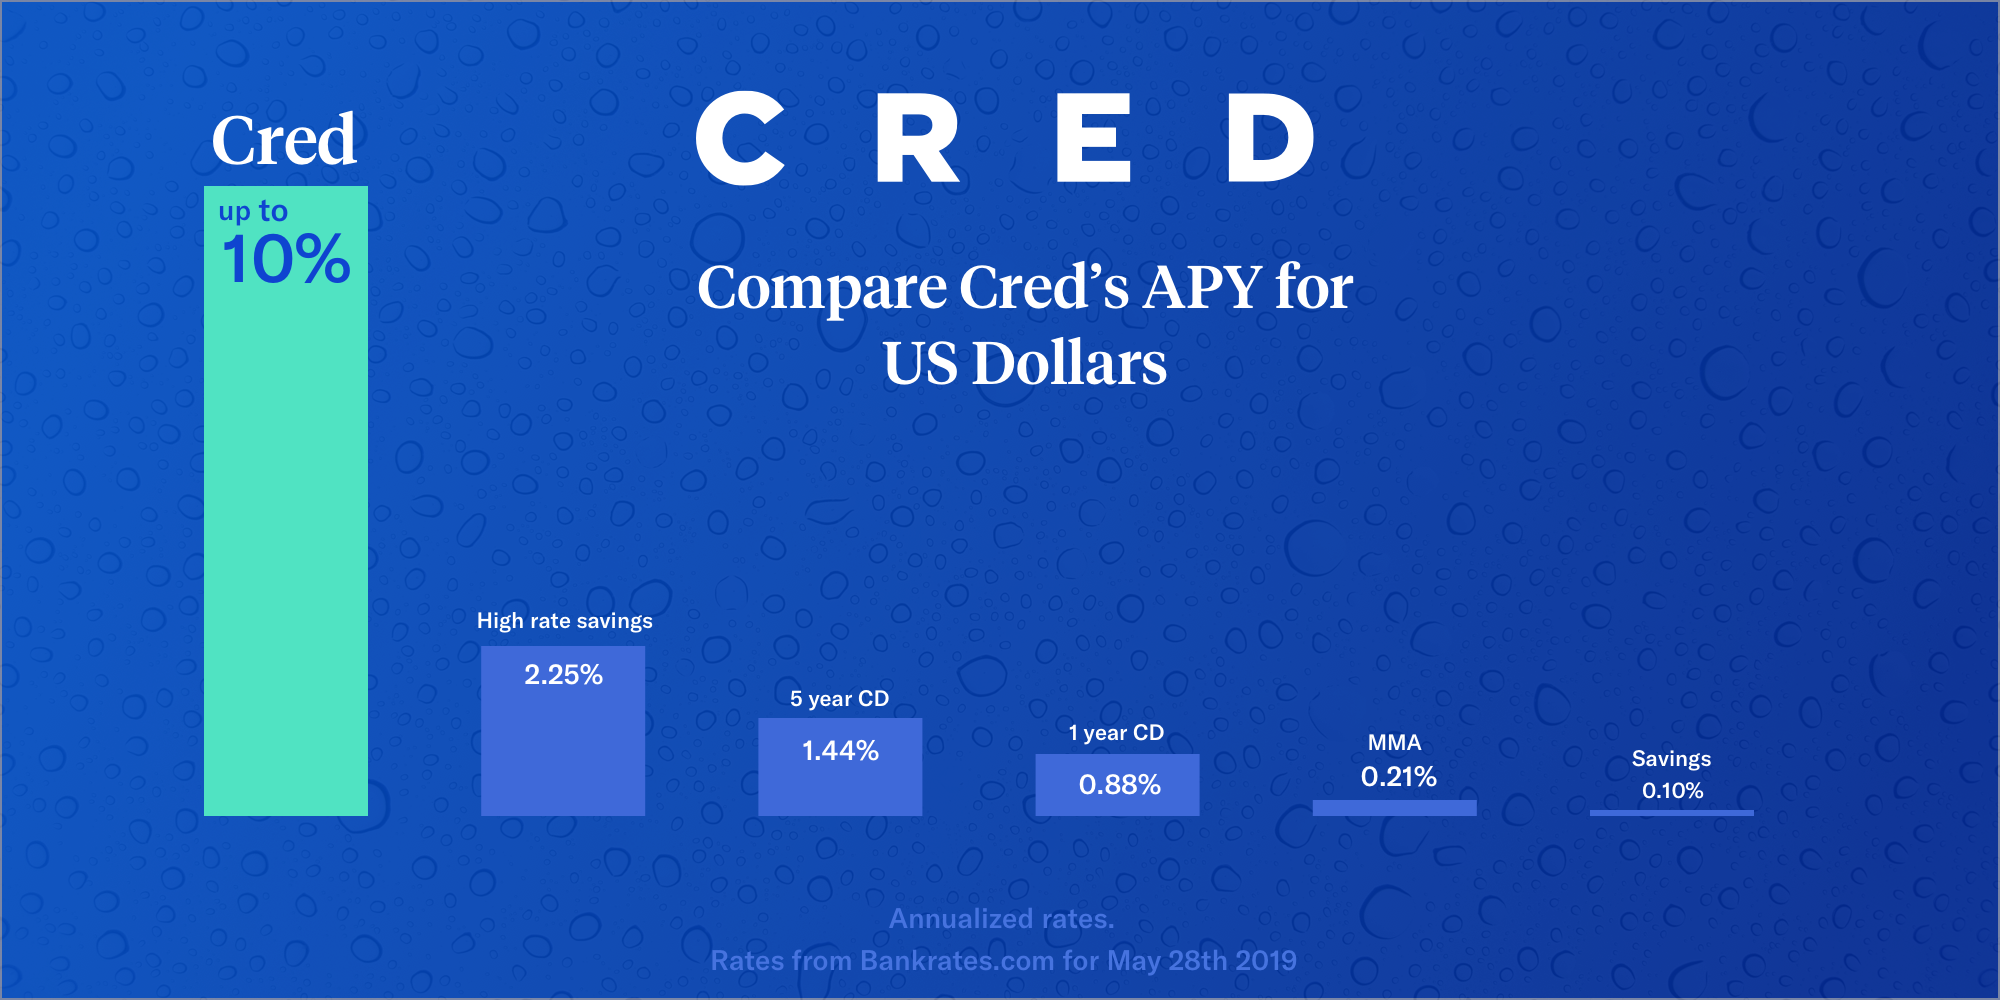 Cred Raises Interest Rate on Dollar and Euro to Highest in